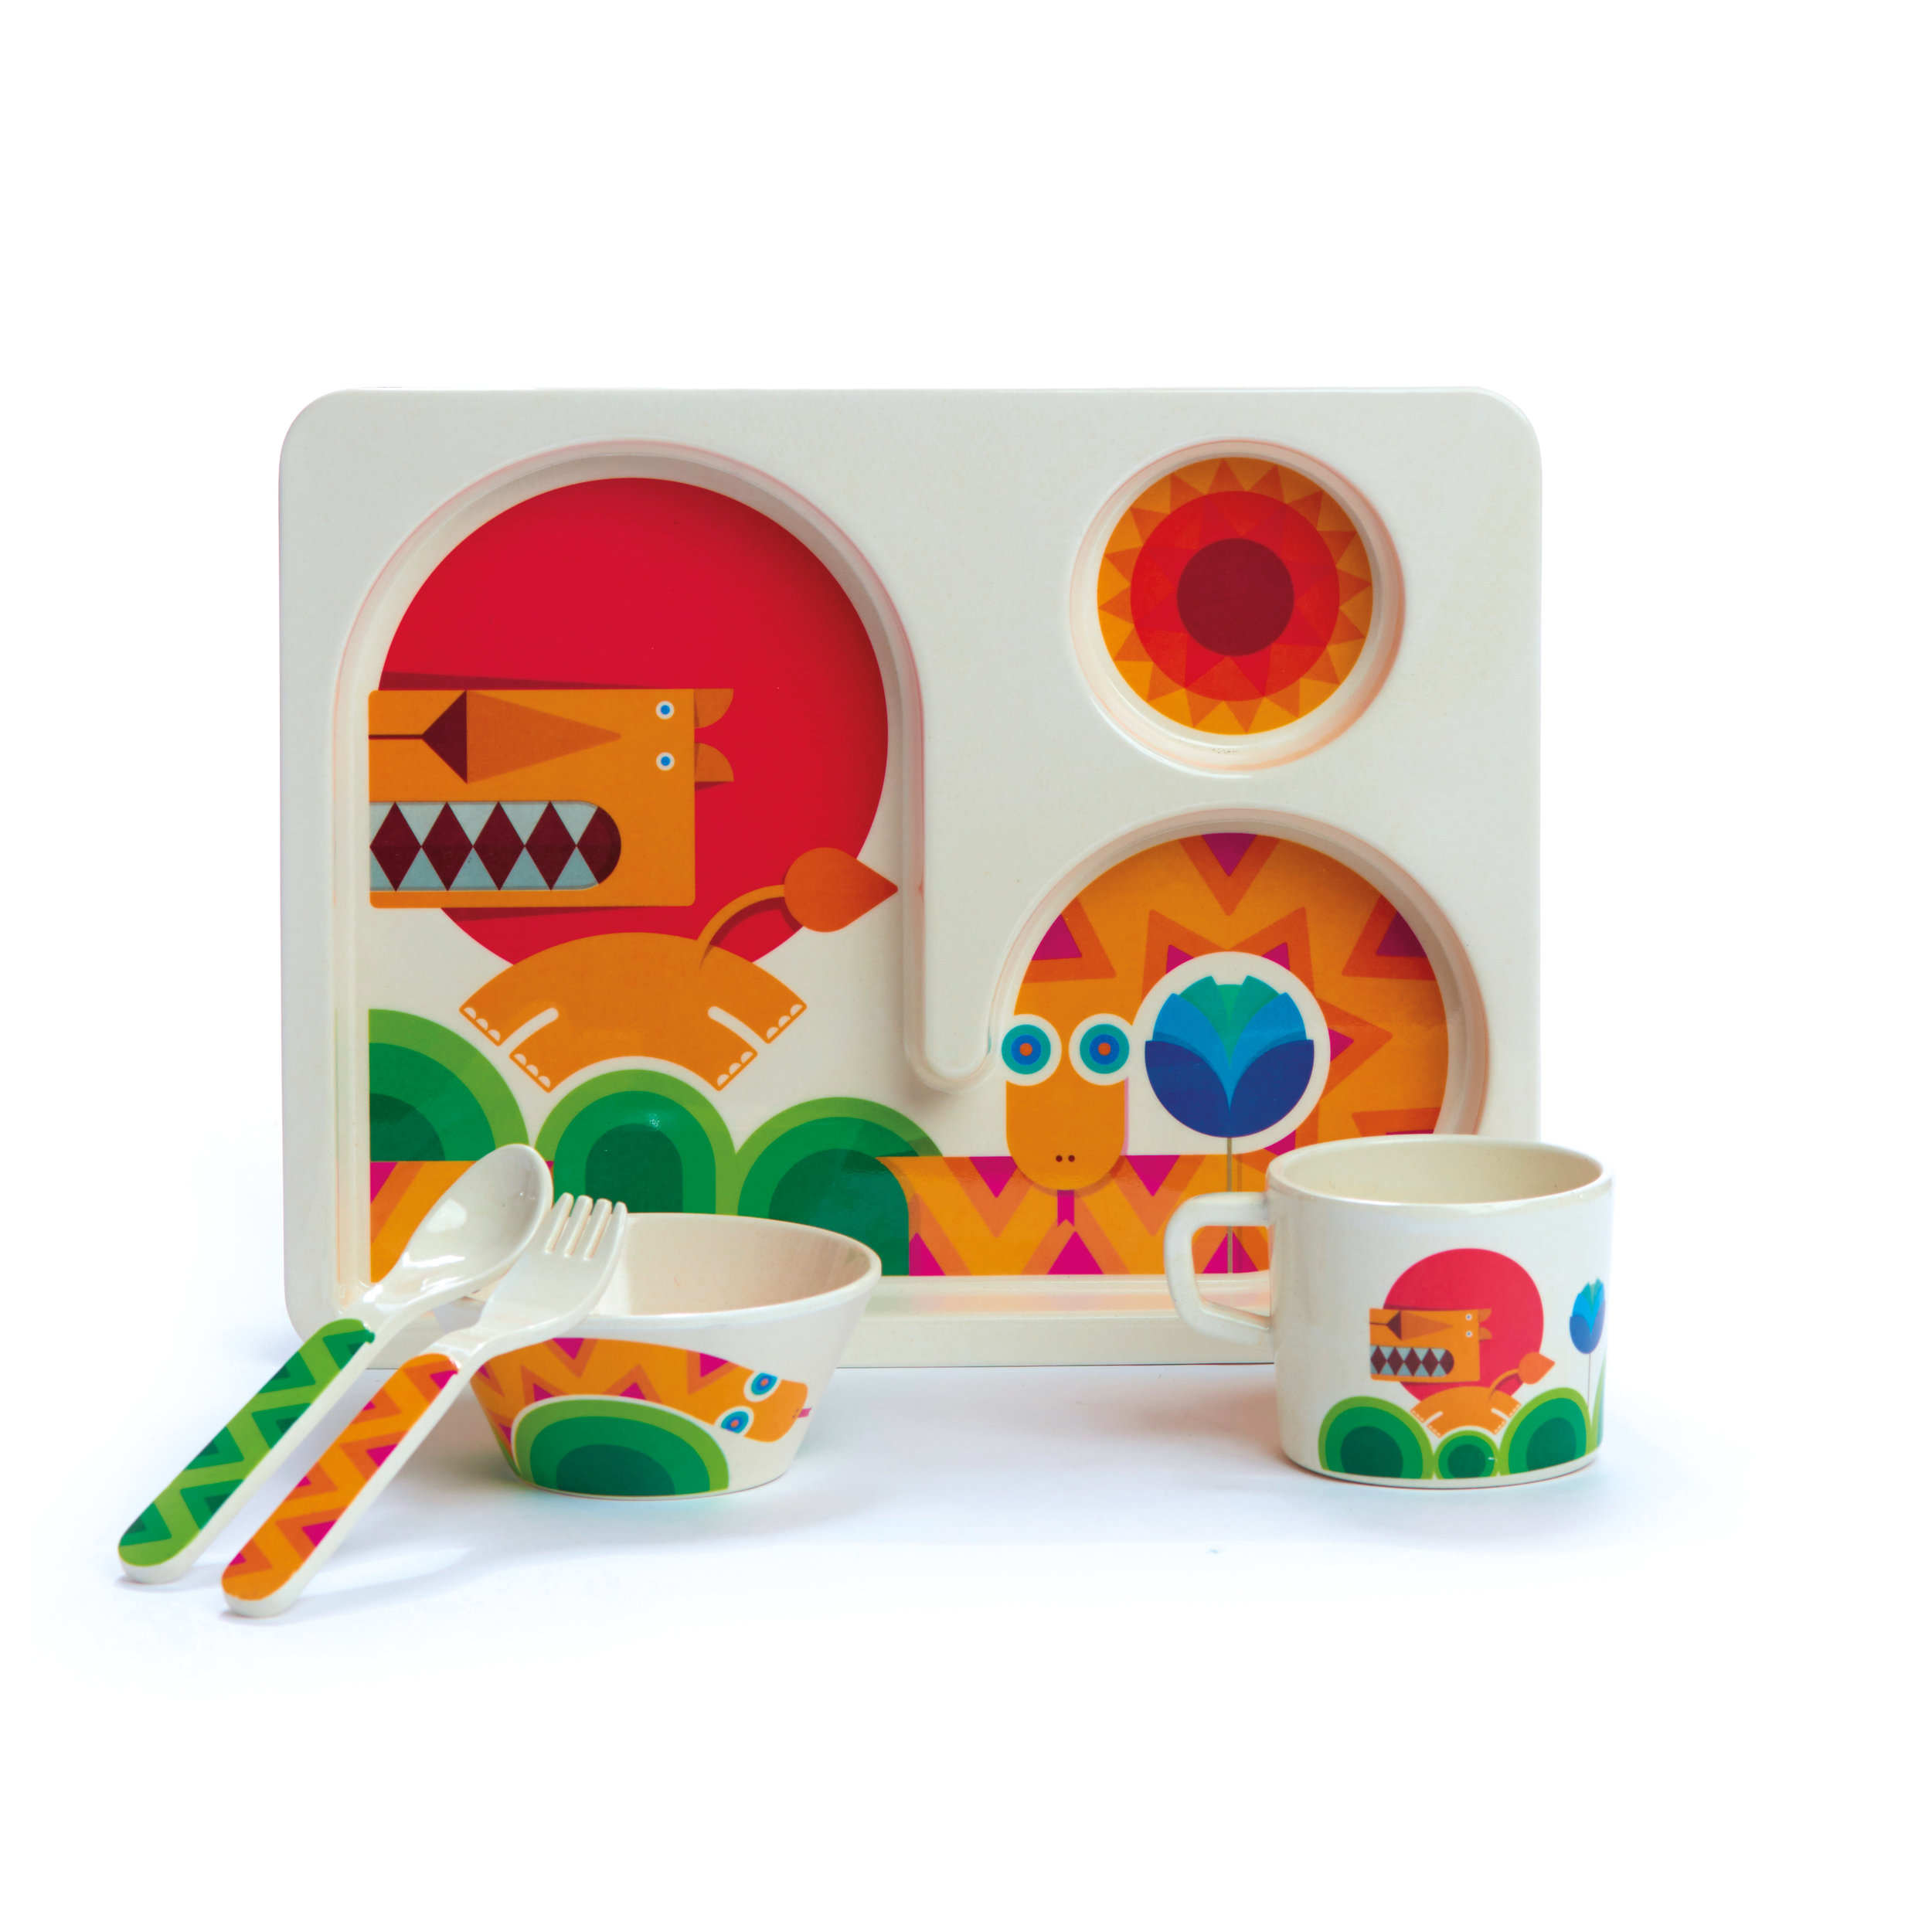 Dylan Kendall - Bamboo Toddler - Lion & Snake - Set - Toddler tray, bowl, cup, fork and spoon - view 1-RETM2.jpg